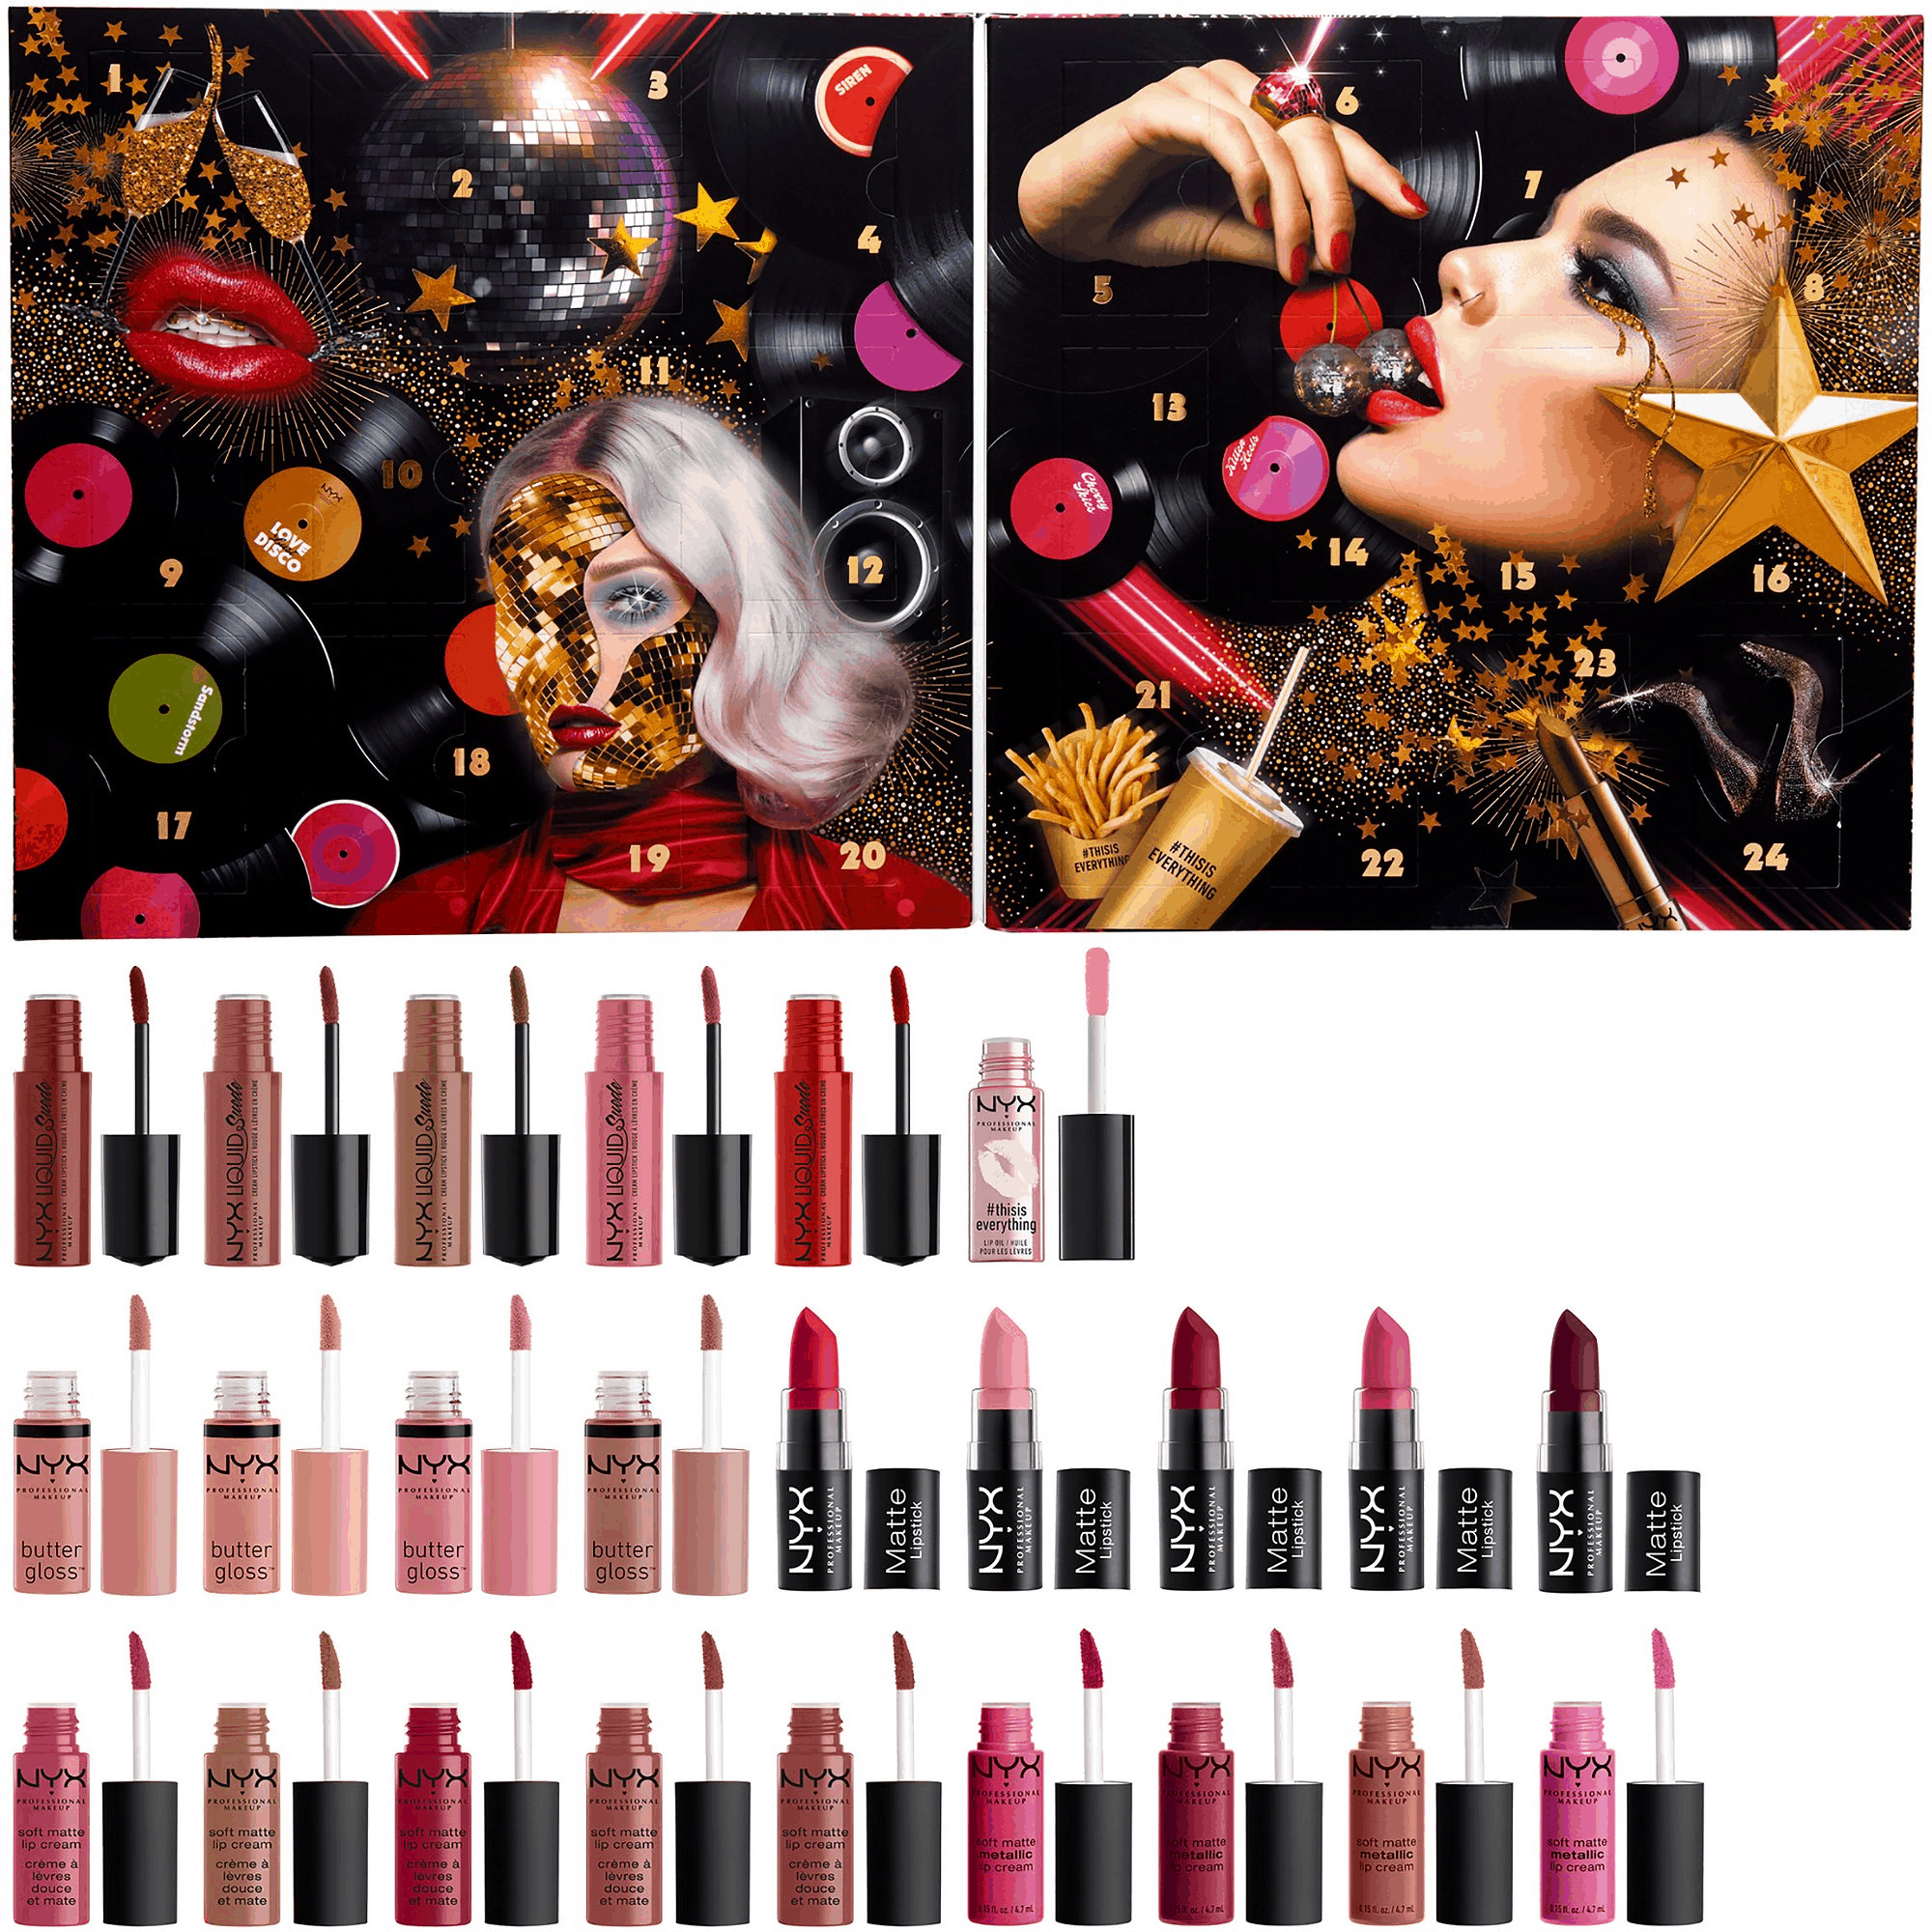 2019 Nyx Beauty Lip Advent Calendar Available Now + Full with Nyx Countdown 2020